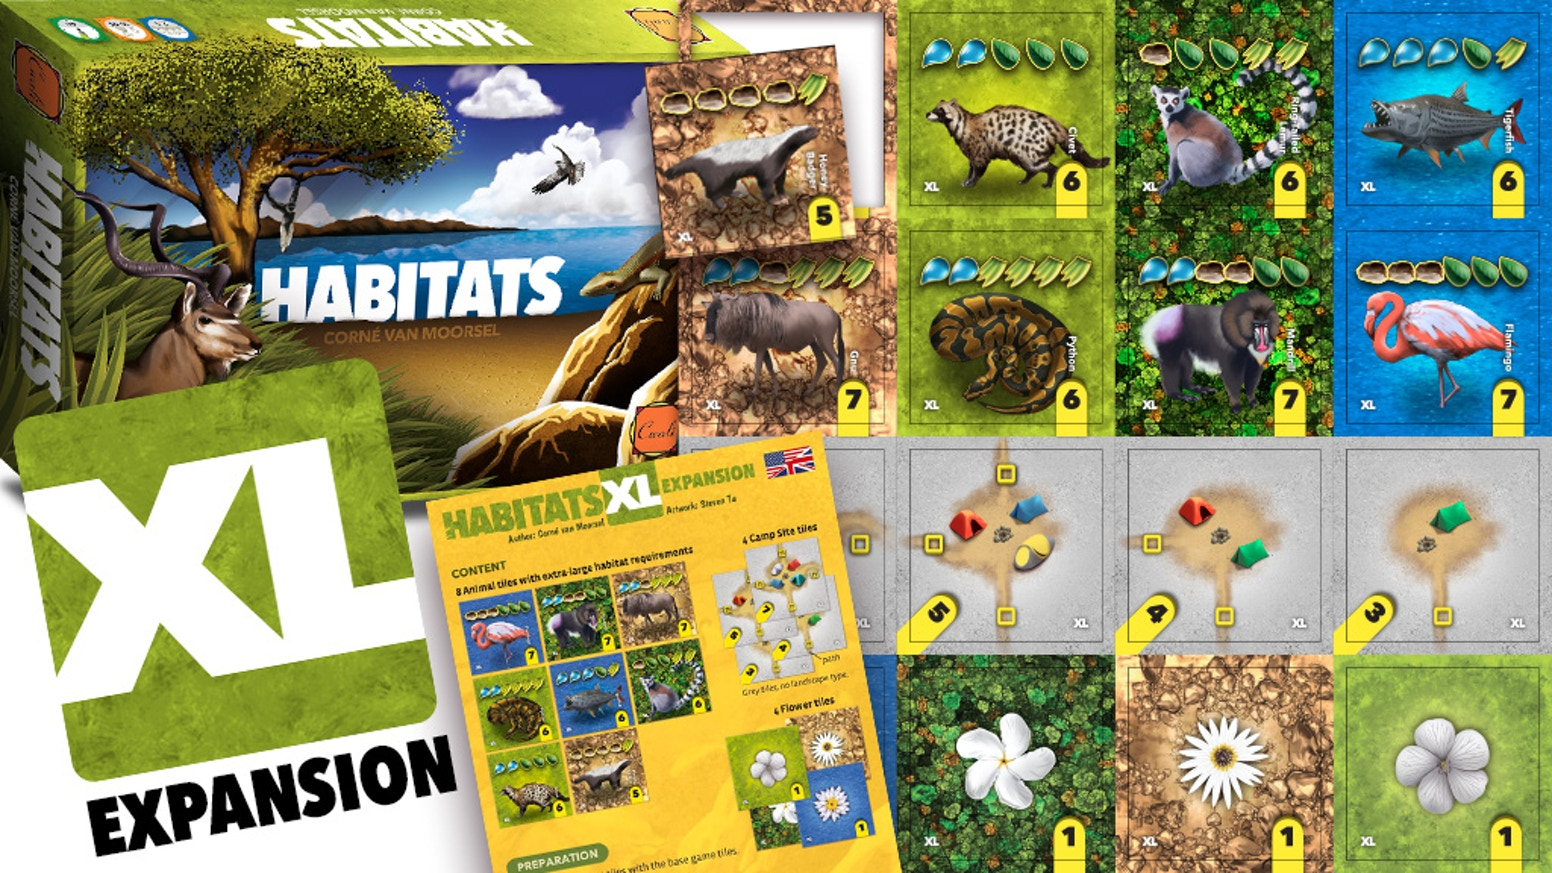 This expansion to HABITATS adds camp sites, flowers, and animals that require larger habitats! With 3 extra game turns!